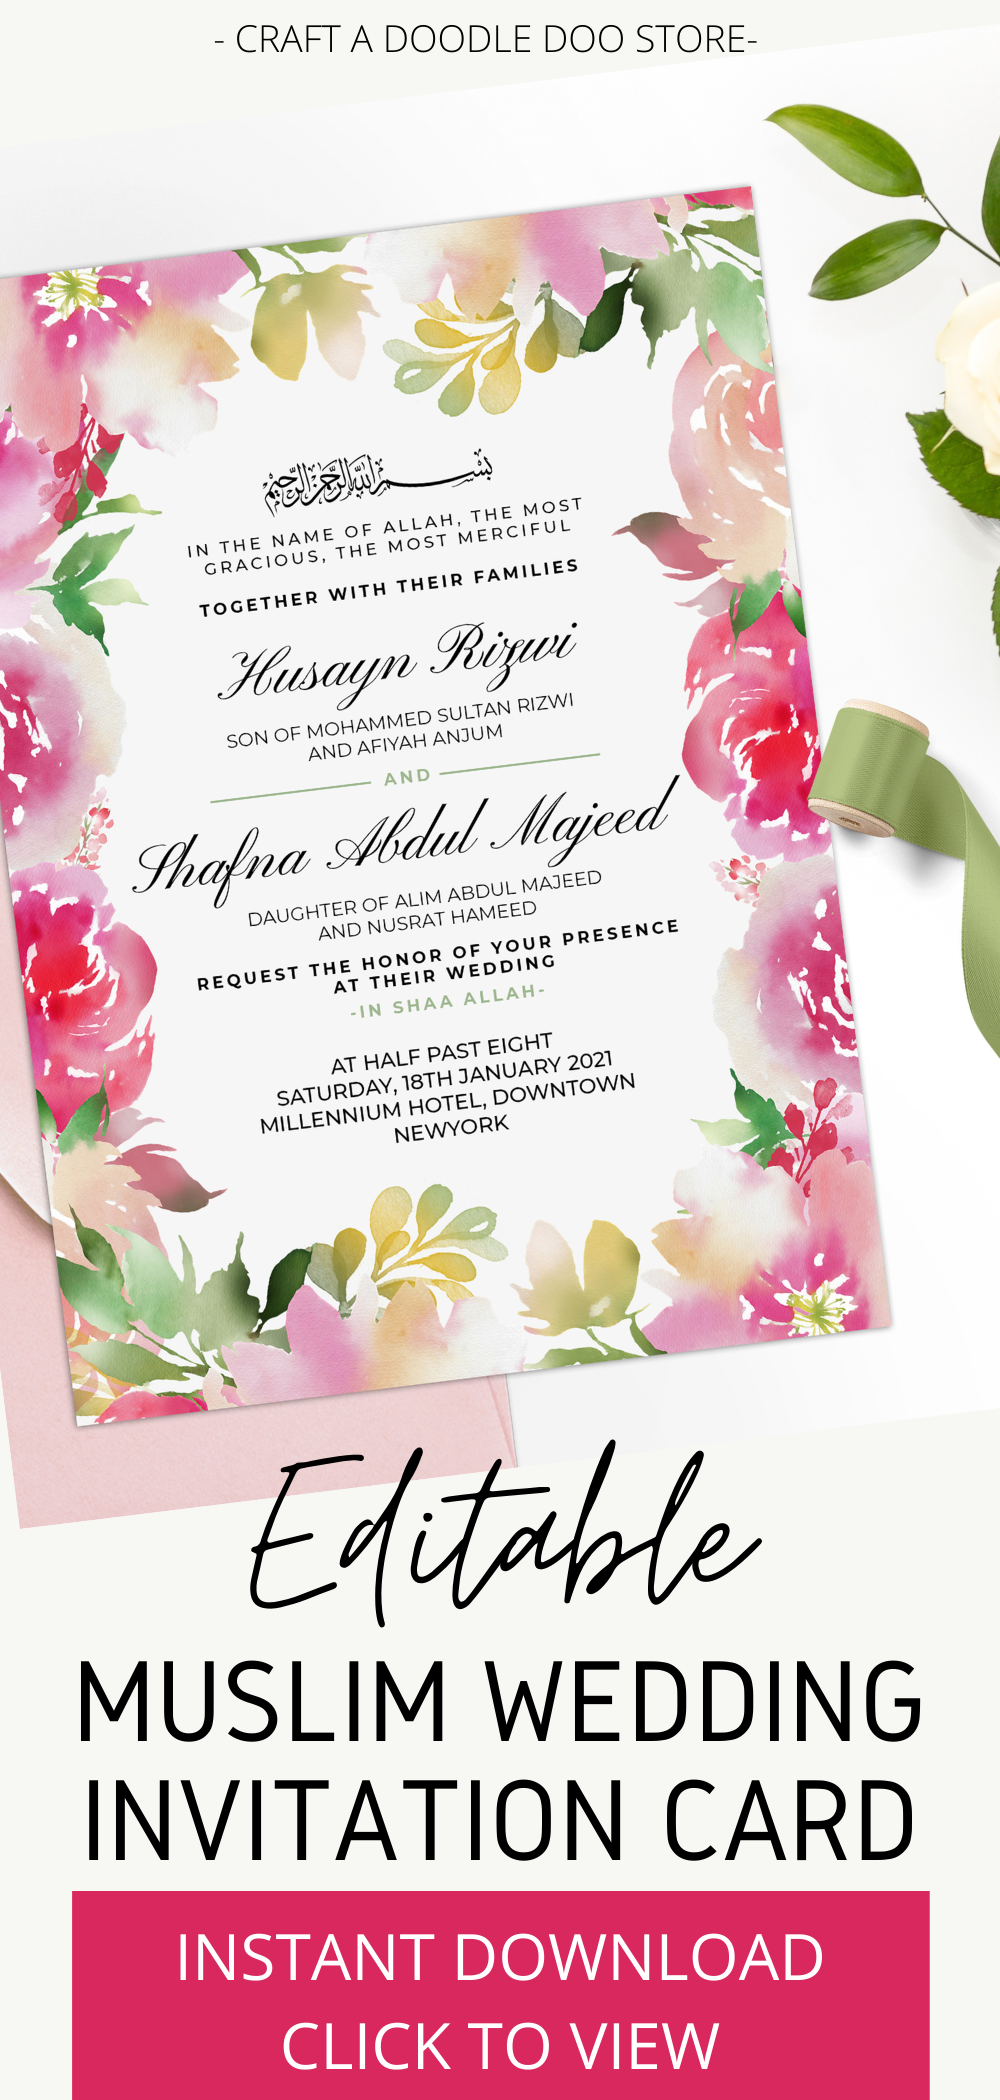 Wedding Invite Pink Editable Template Wedding Printable Engagement Announcement Cream and White 5x7 Card PDF Digital Download